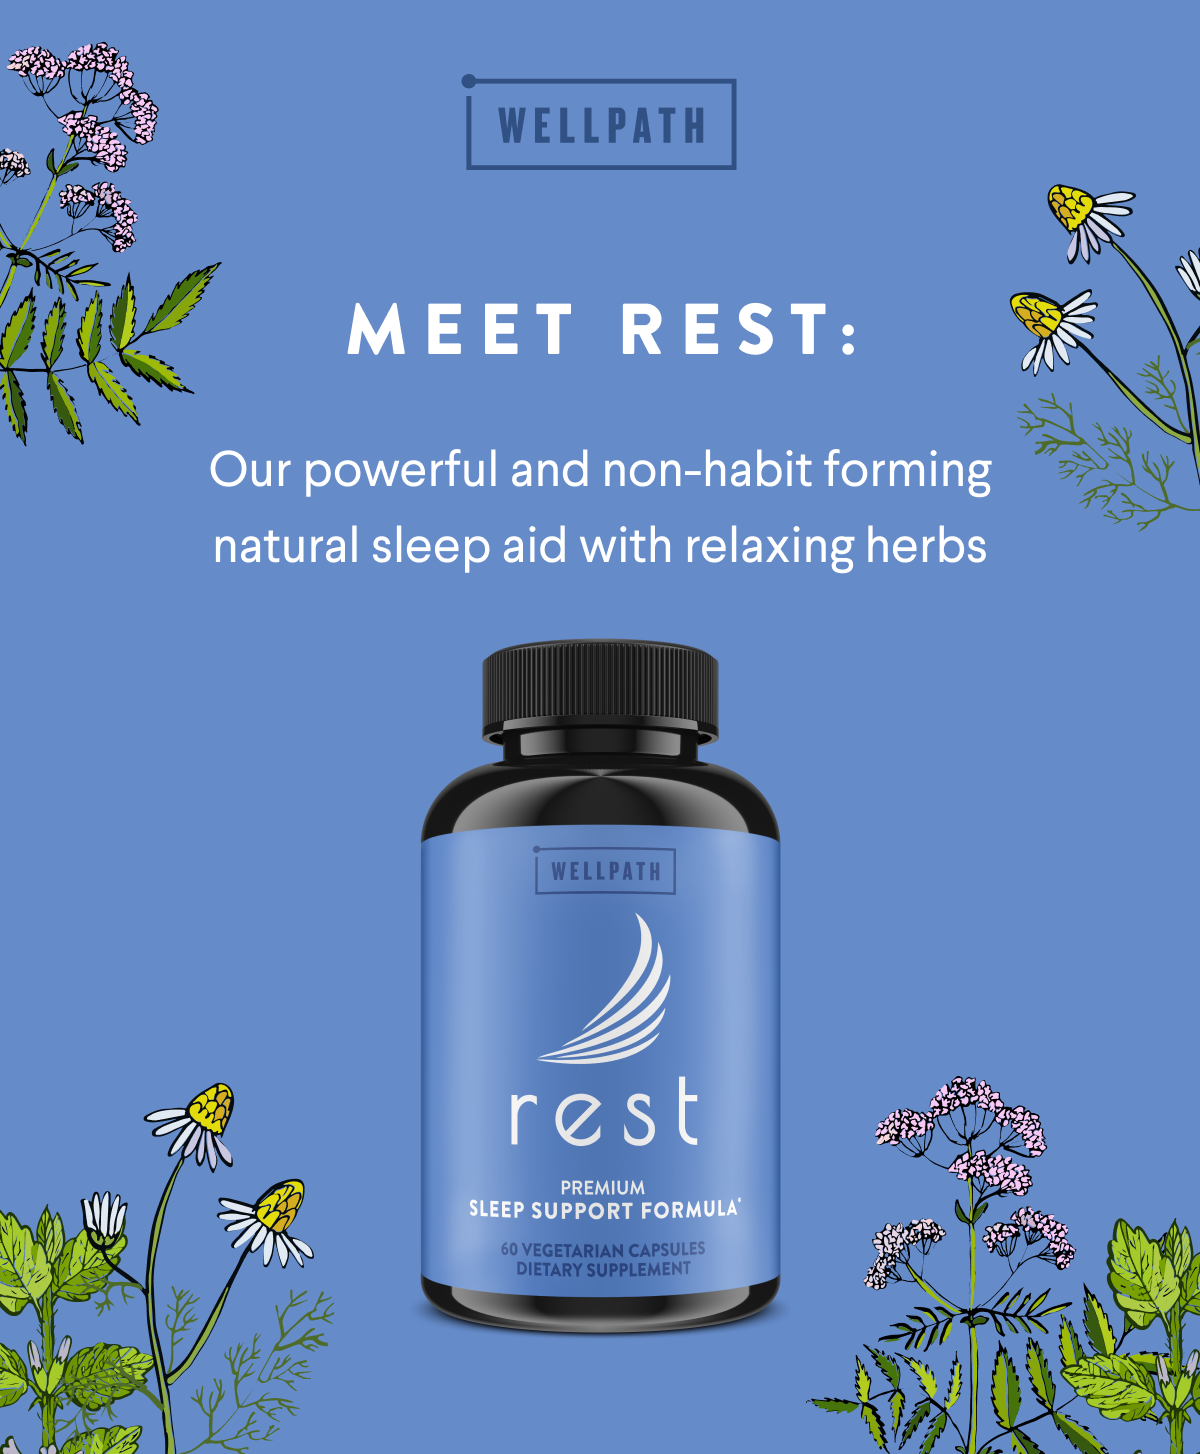 New Wellpath Rest Natural Sleep Aid for Adults- Natural Slee